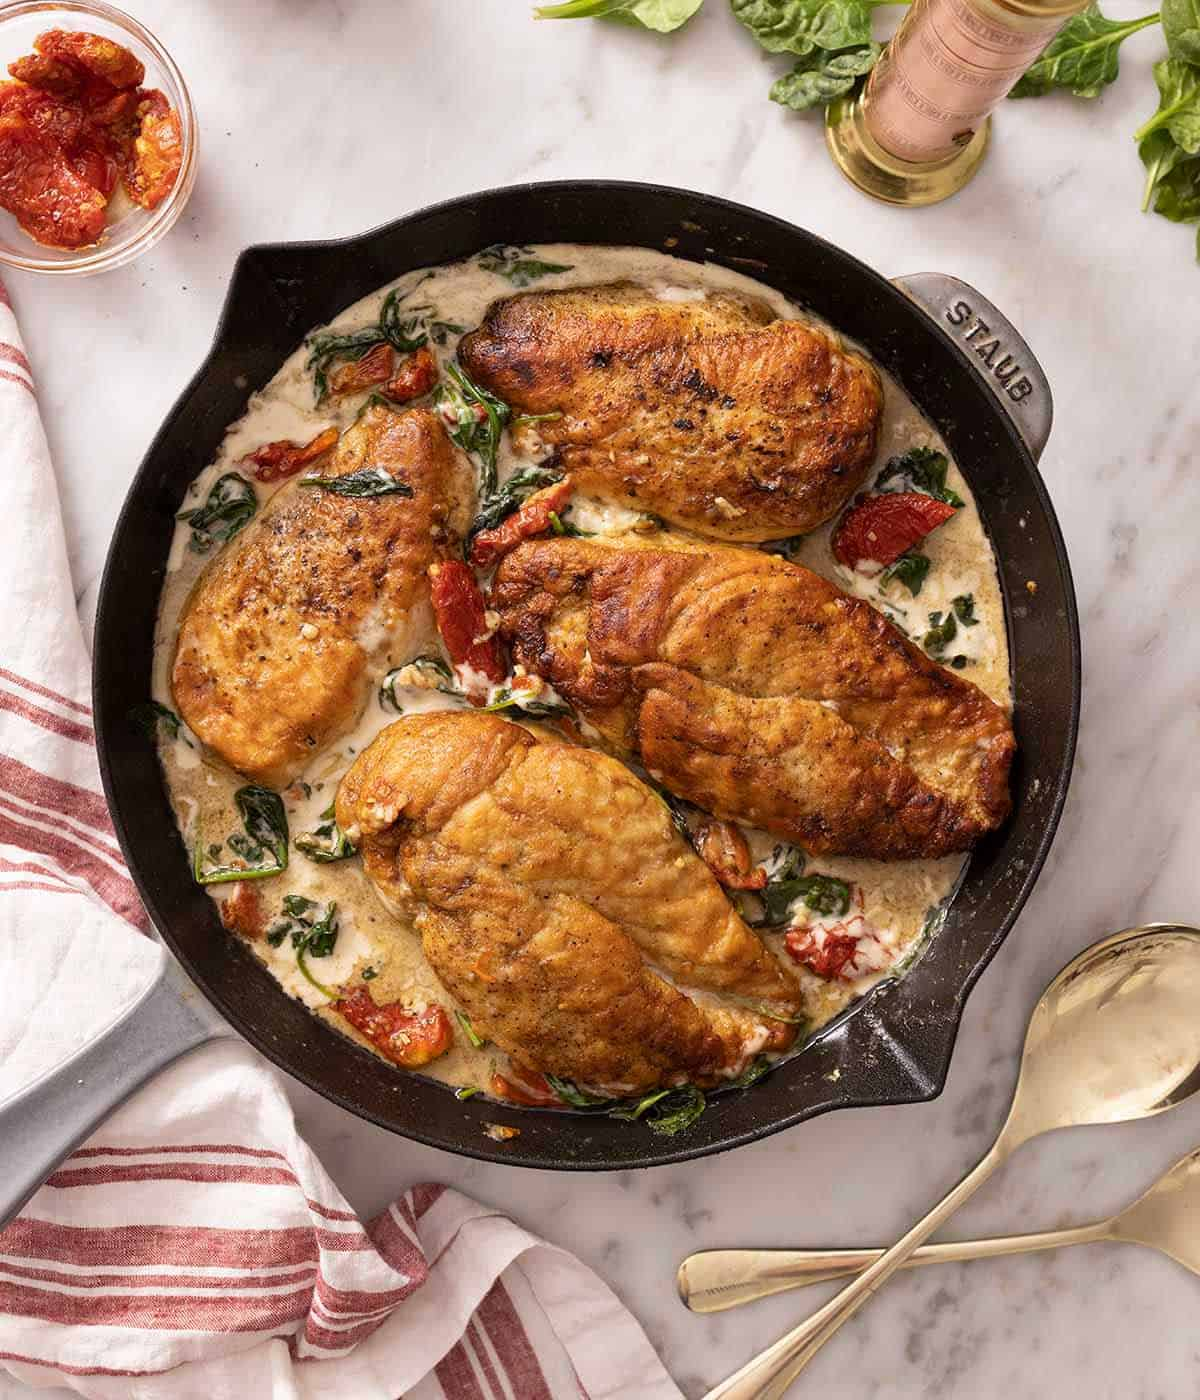 A grey Staub pan containing Tuscan chicken on a marble surface.